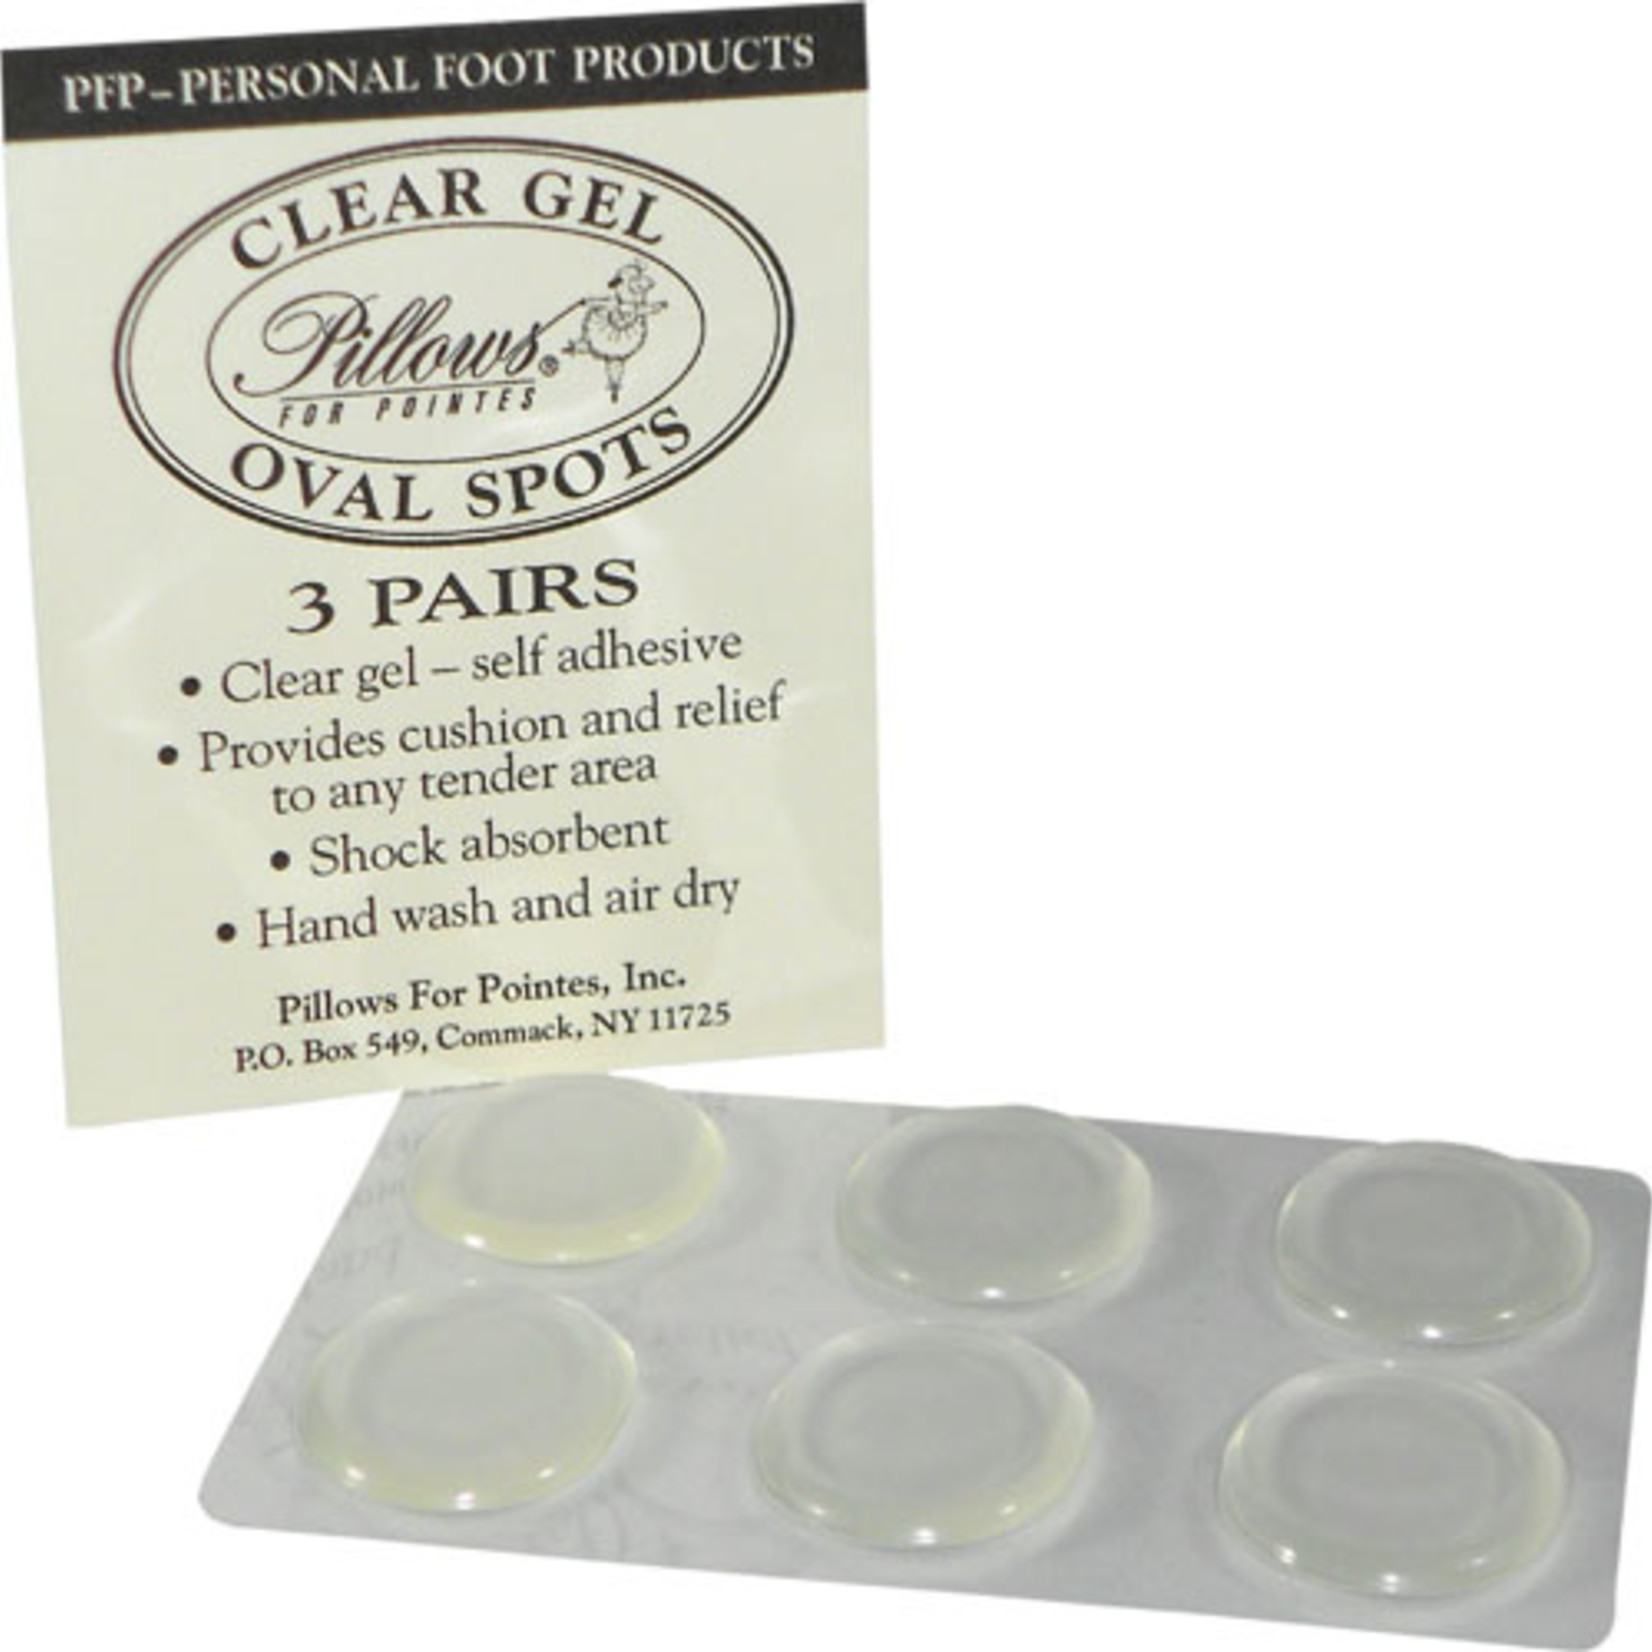 Pillows for Pointes Pillows for Pointes Clear Gel Oval Spots